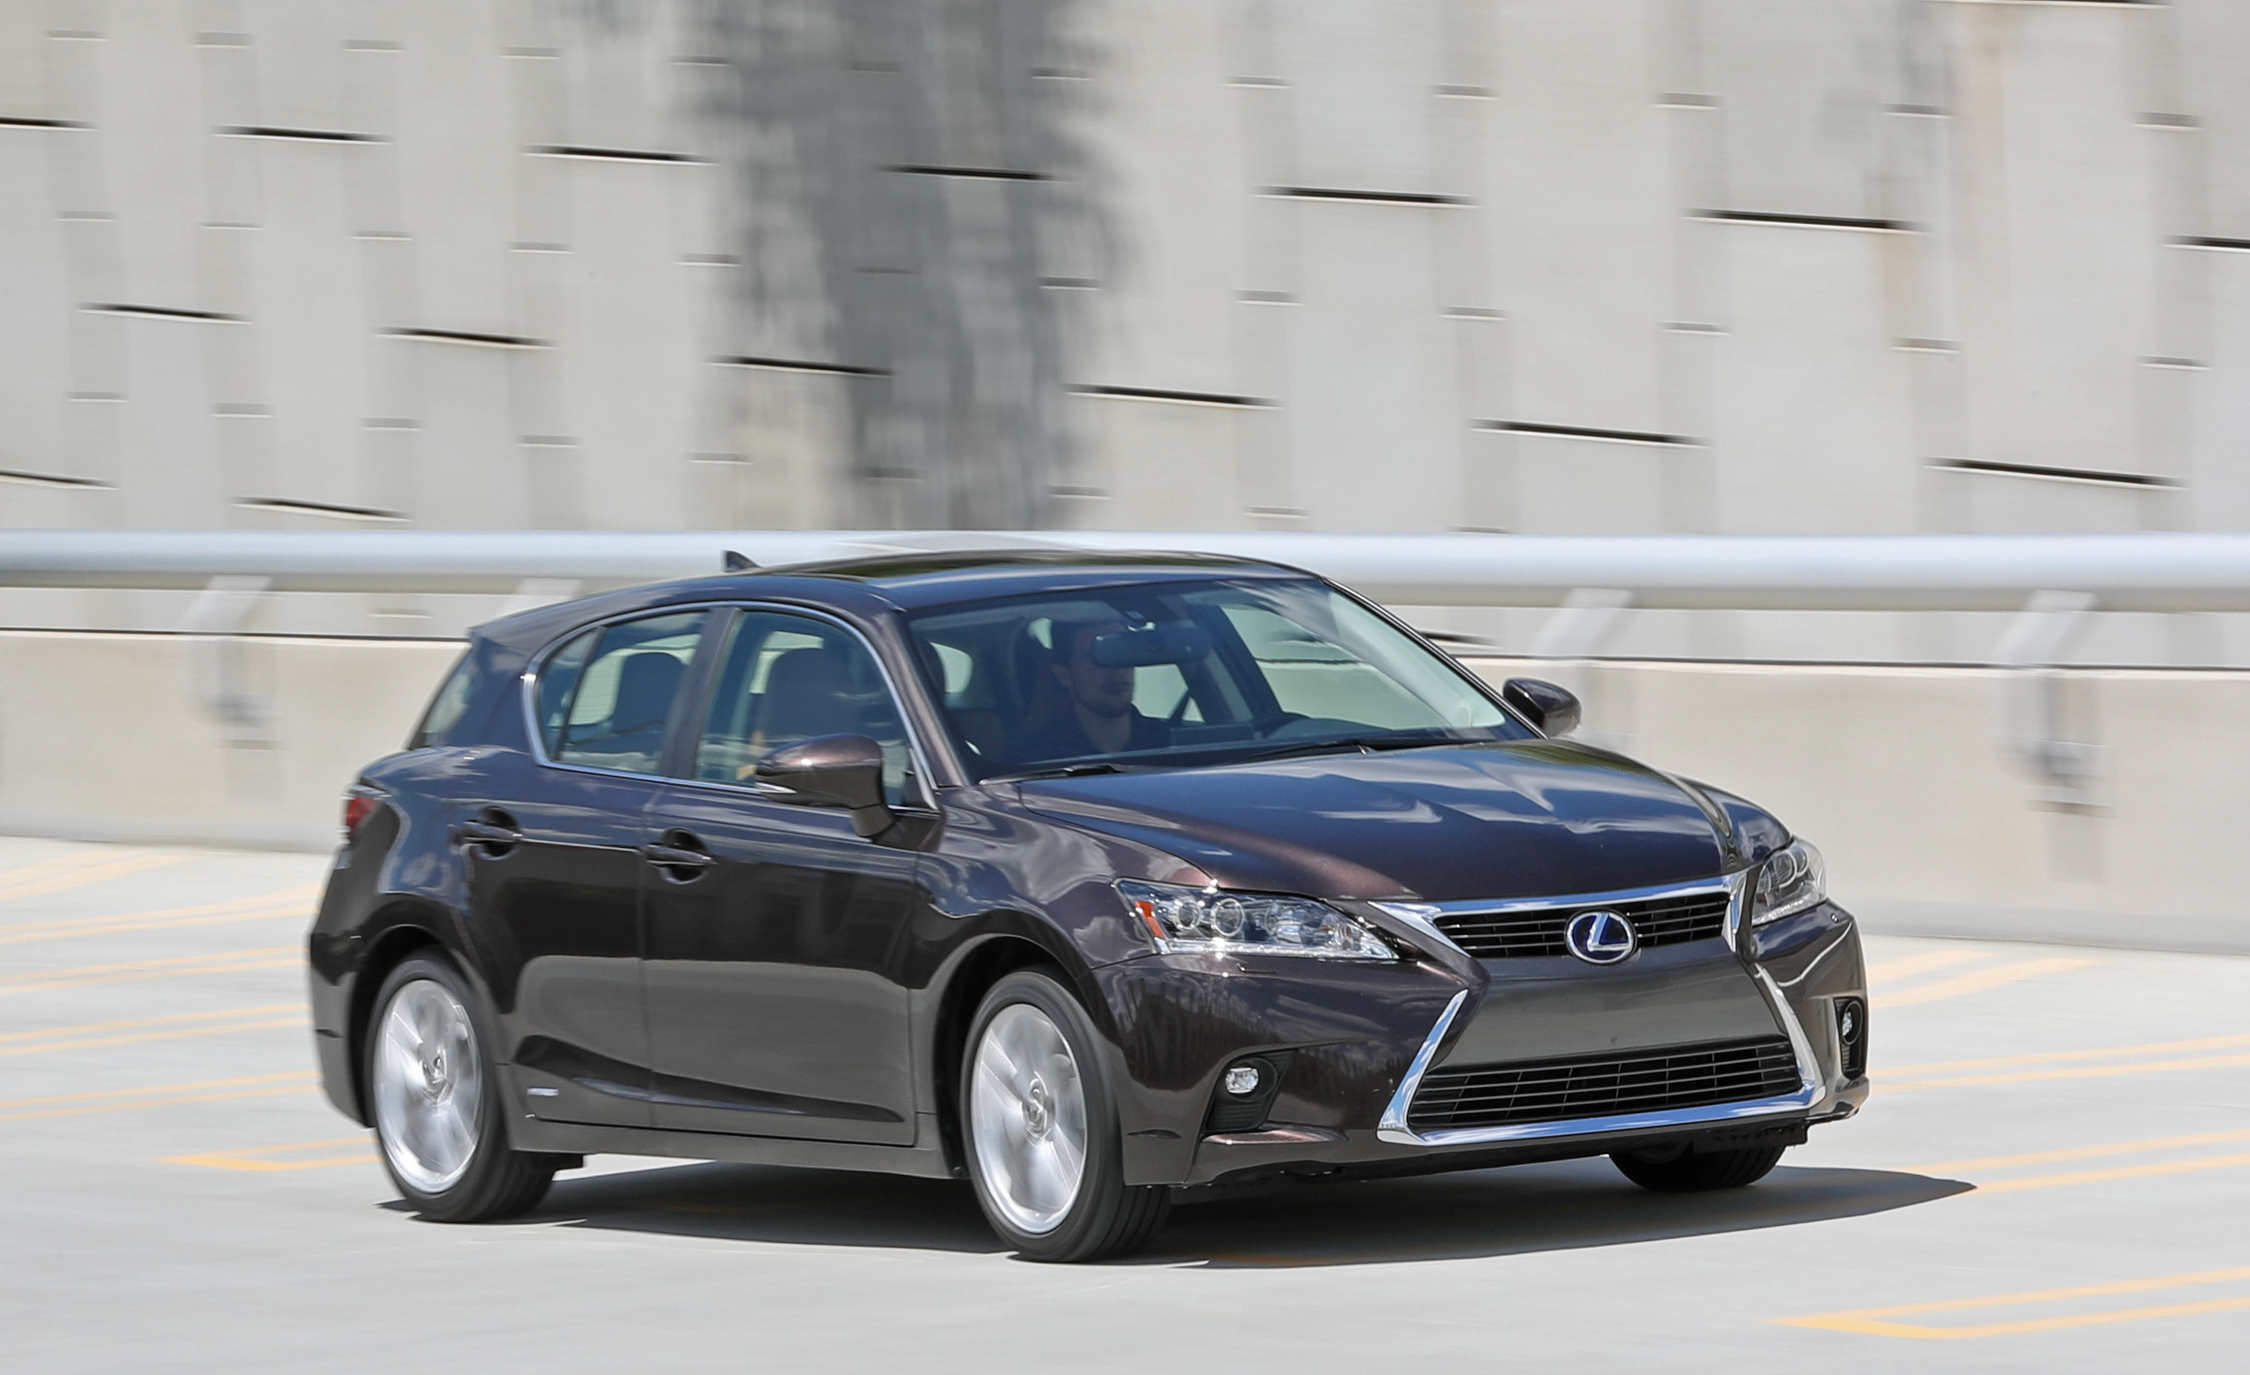 2016 Lexus CT200h (View 20 of 29)